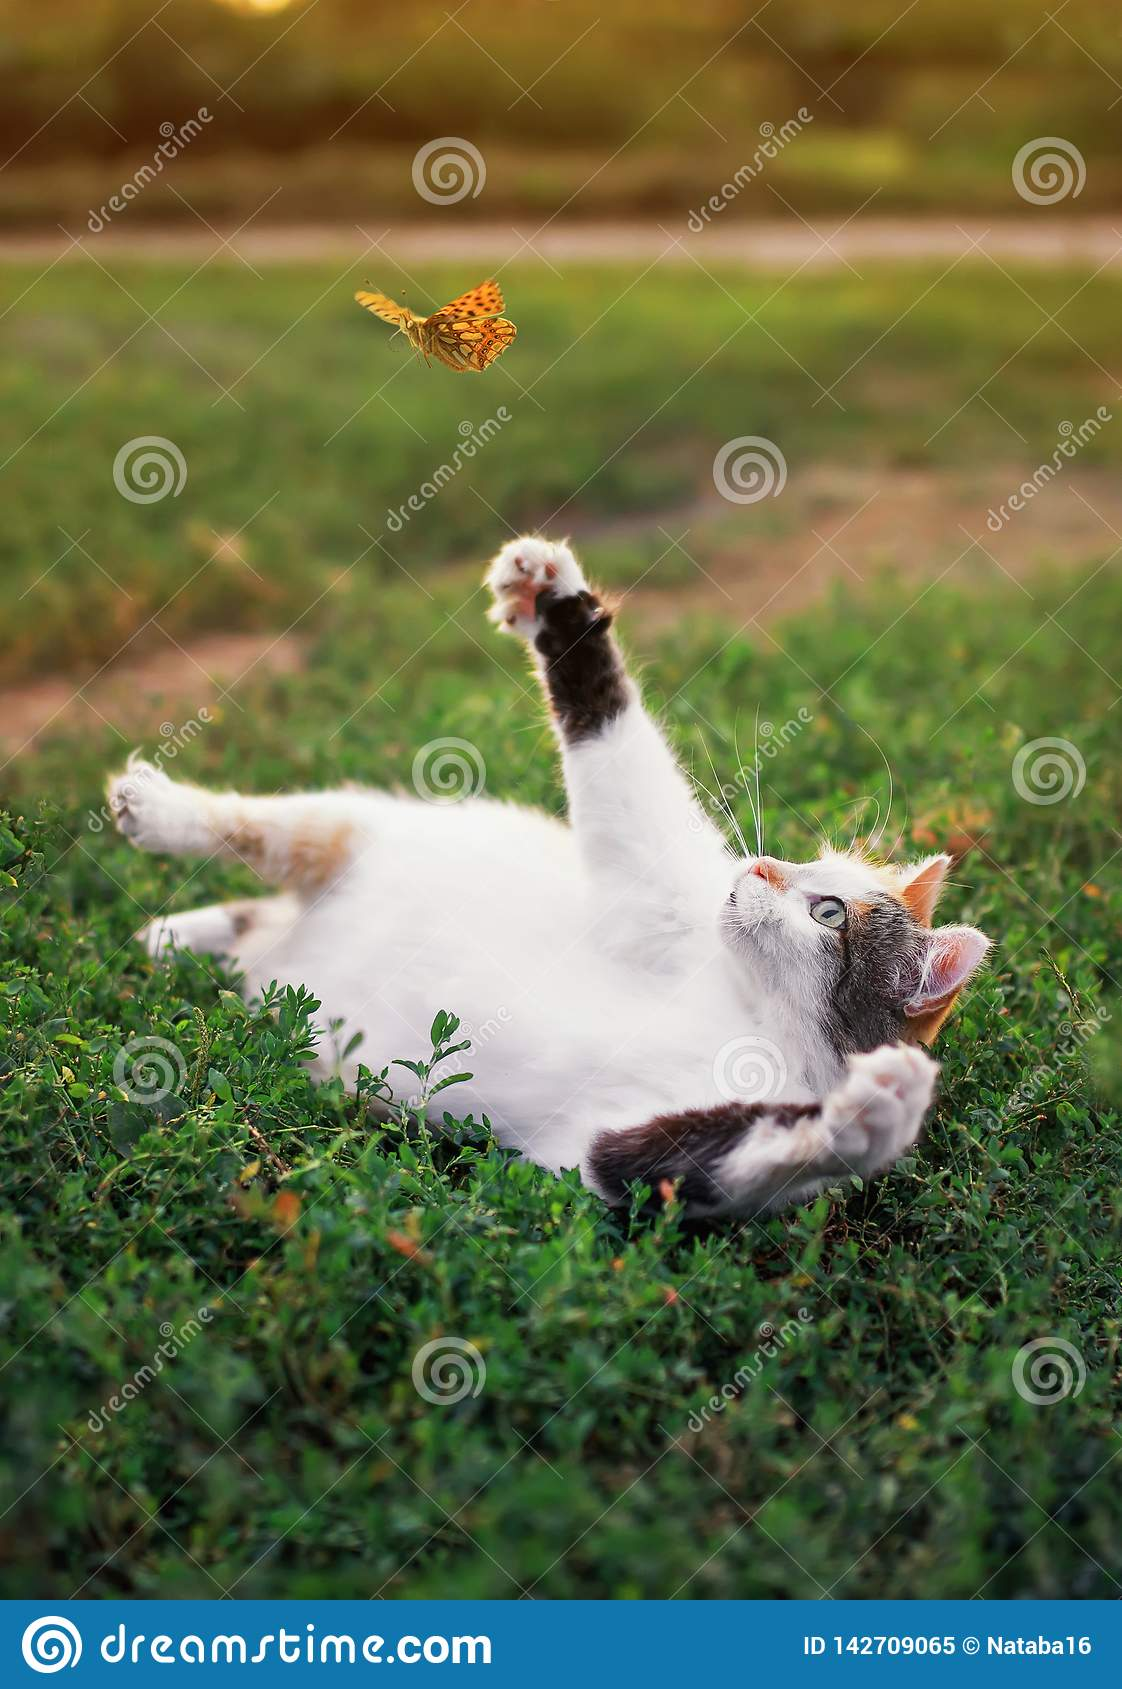 Funny white fat cat lies on a summer sunny meadow and catches a flying orange butterfly with its paw on a clear warm evening